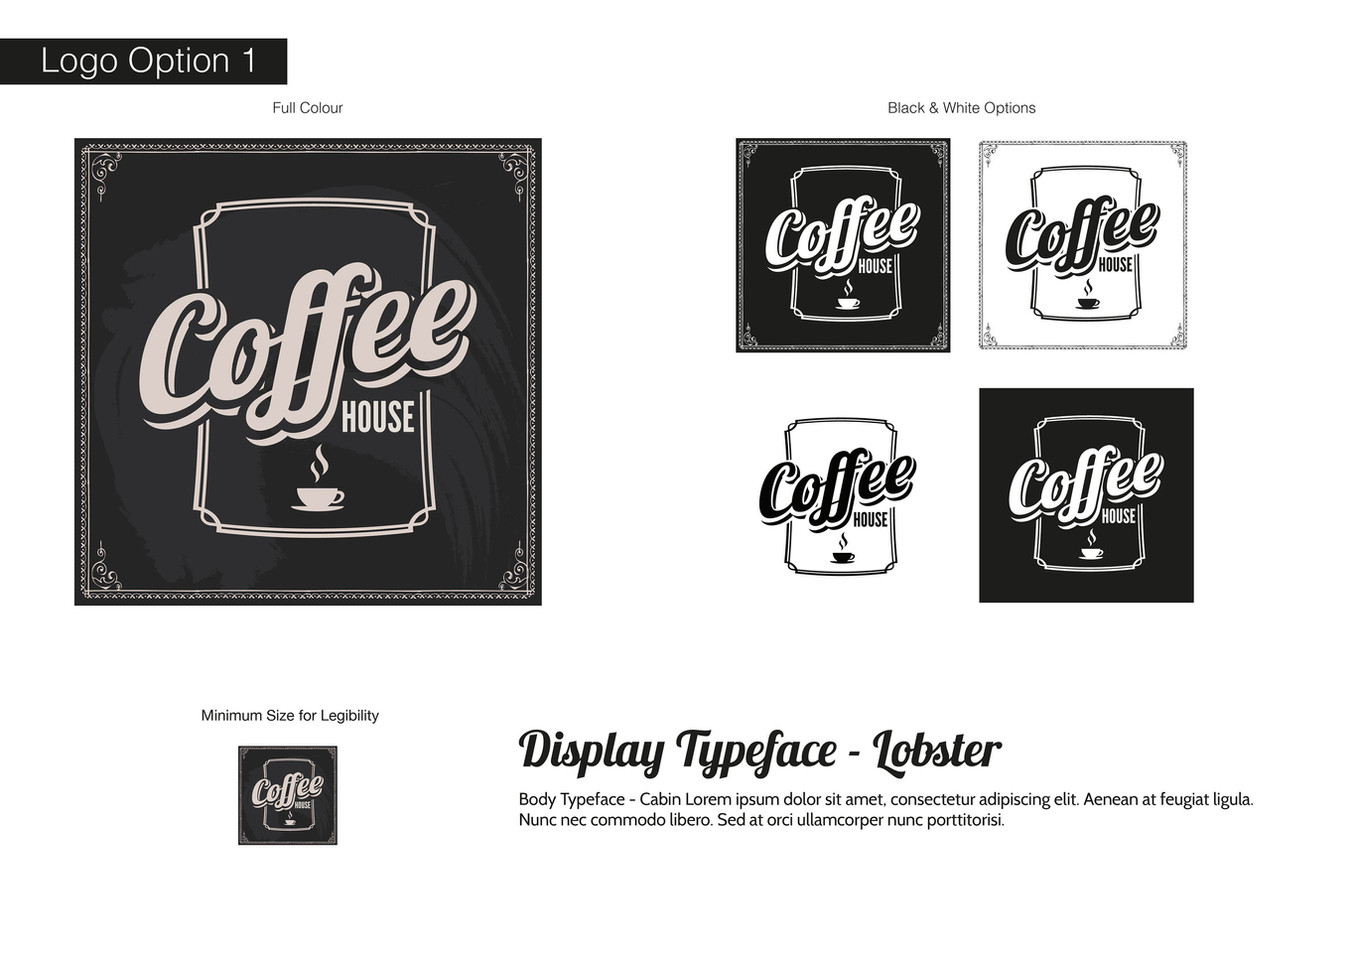 Coffee House Visual Identity - Development 1